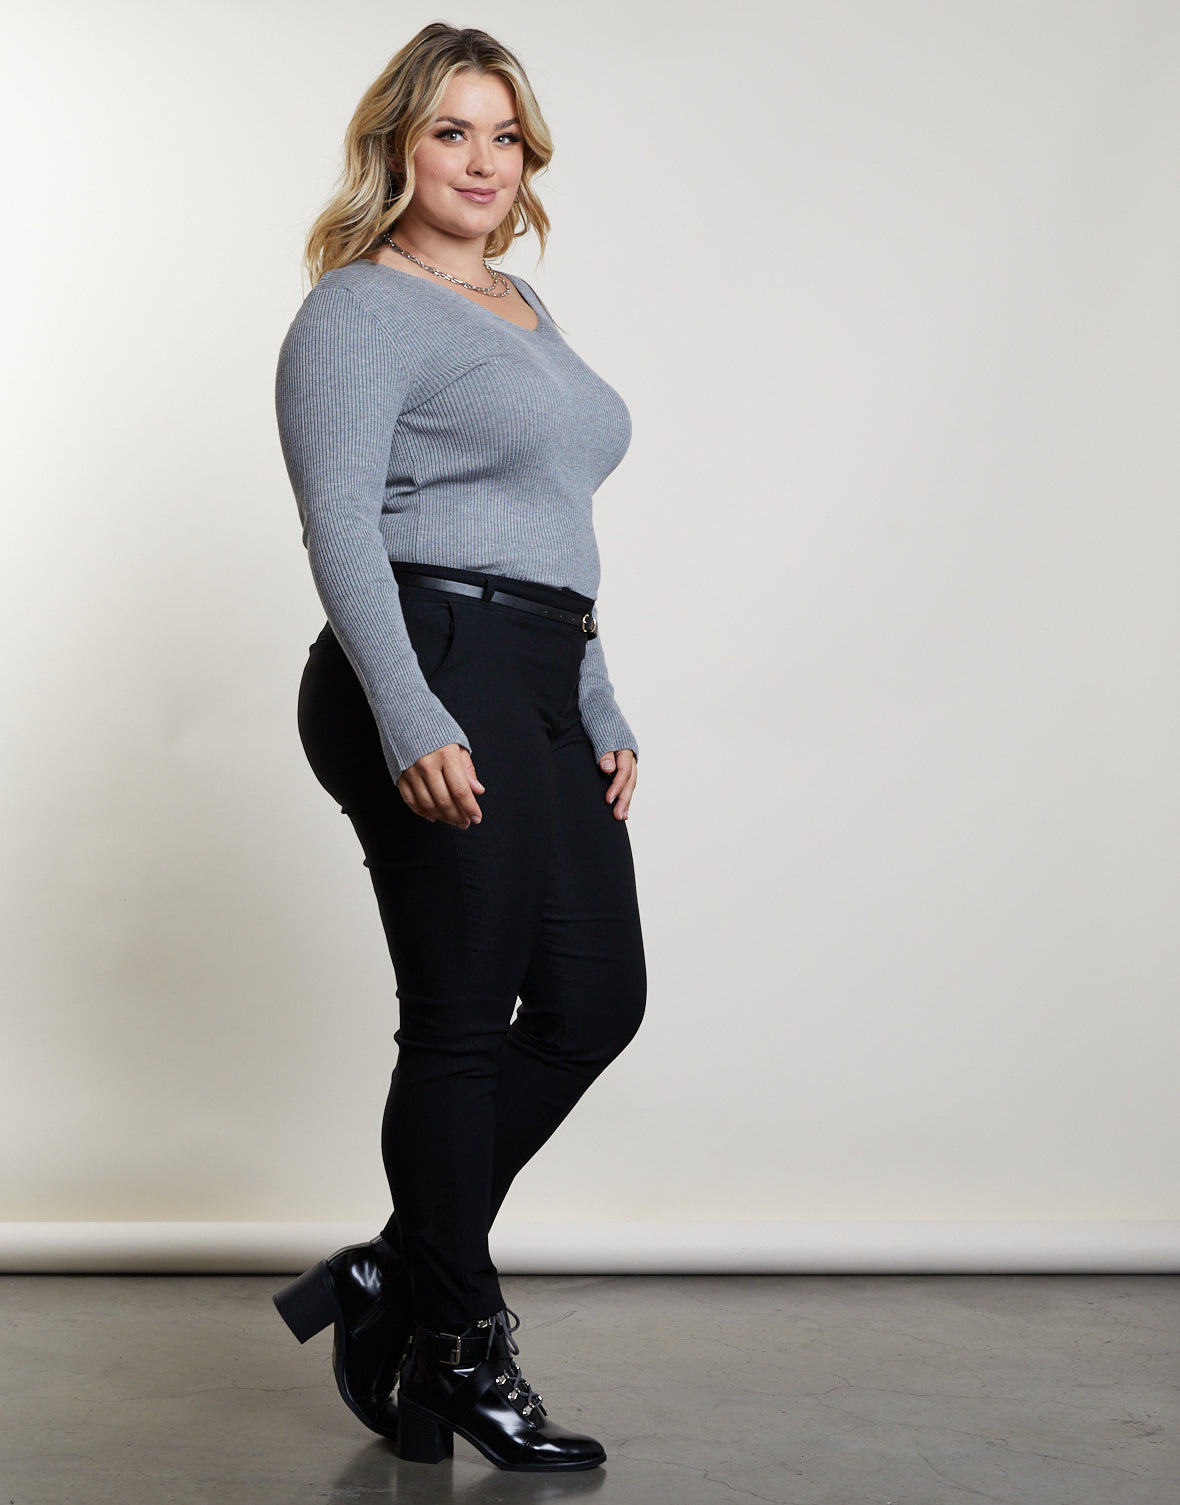 Plus Size You and V Sweater